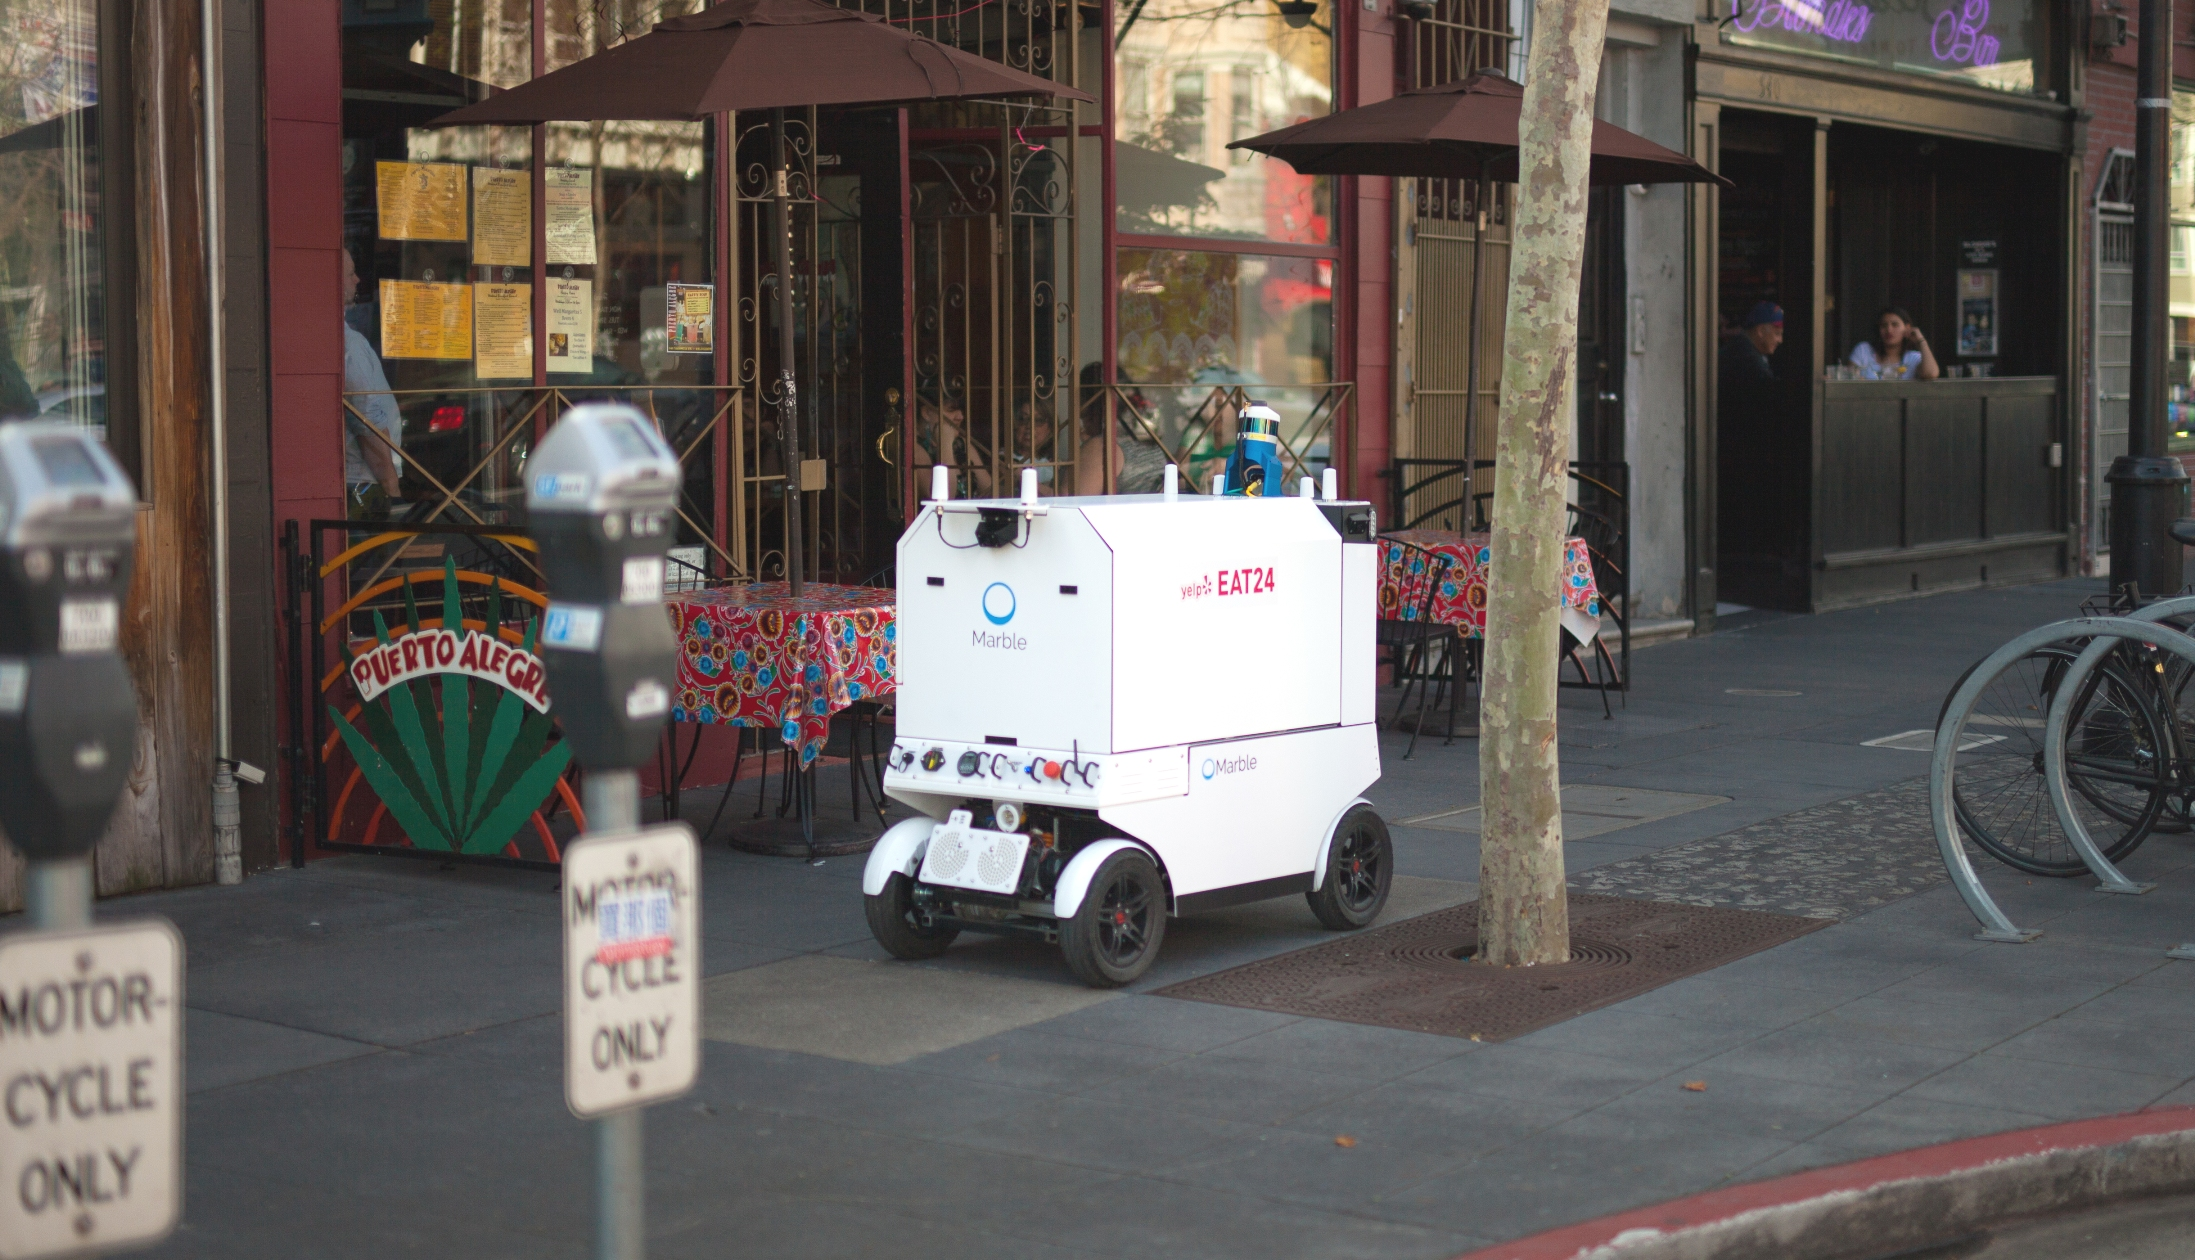 Marble robots are now making food deliveries in San Francisco